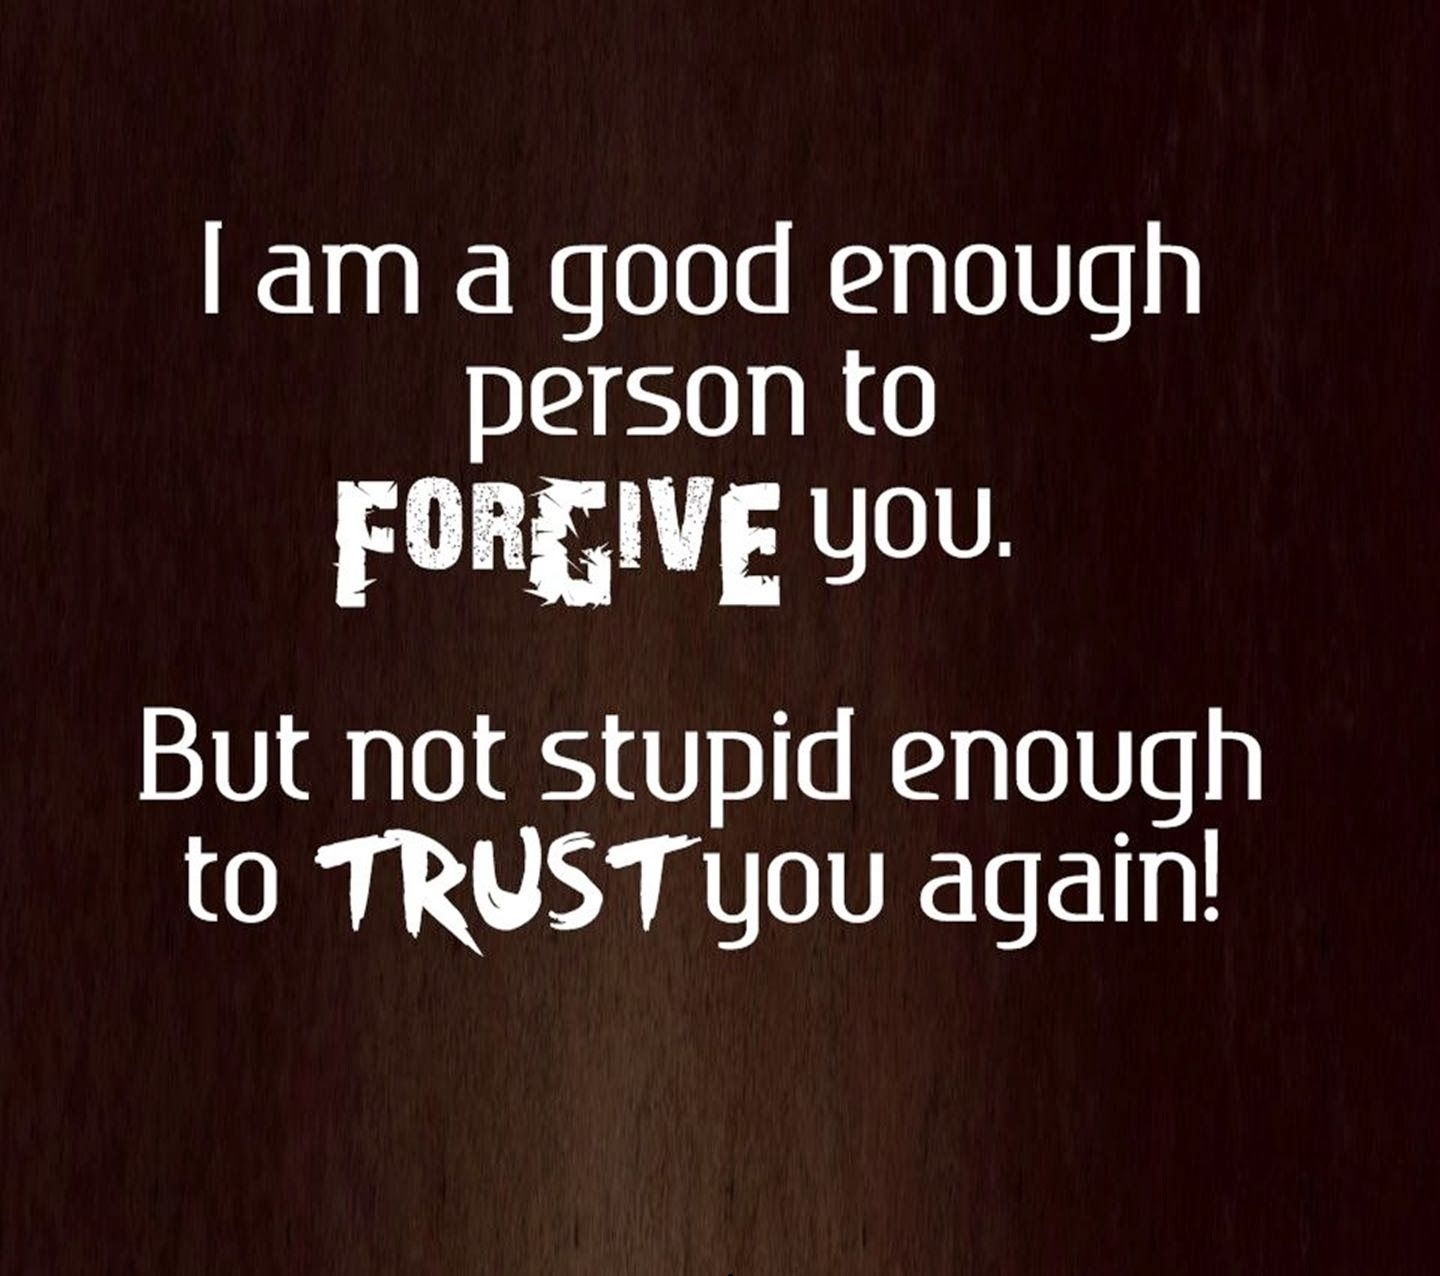 Betrayal Sayings and Quotes ~ Best Quotes and Sayings